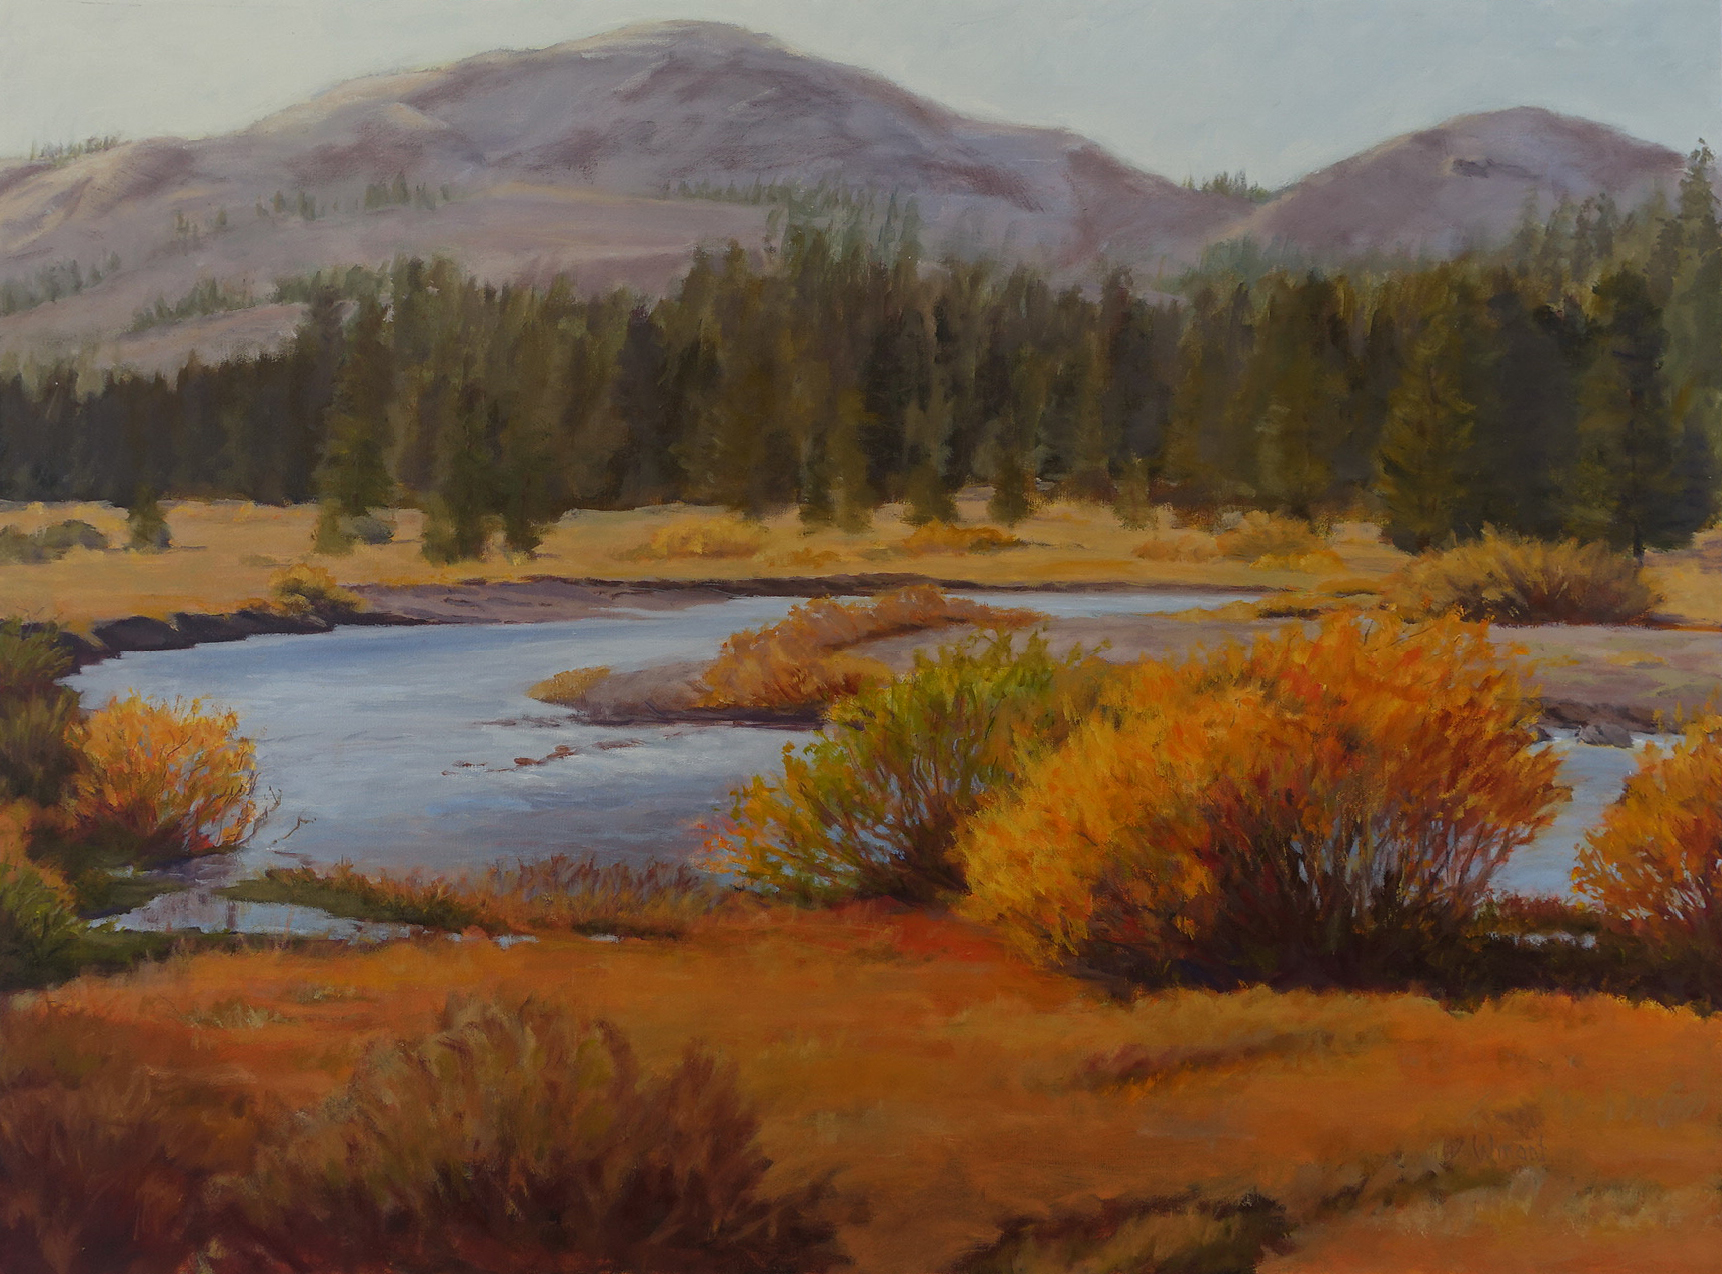 Tuolumne Meadows, 30 x 40 inches